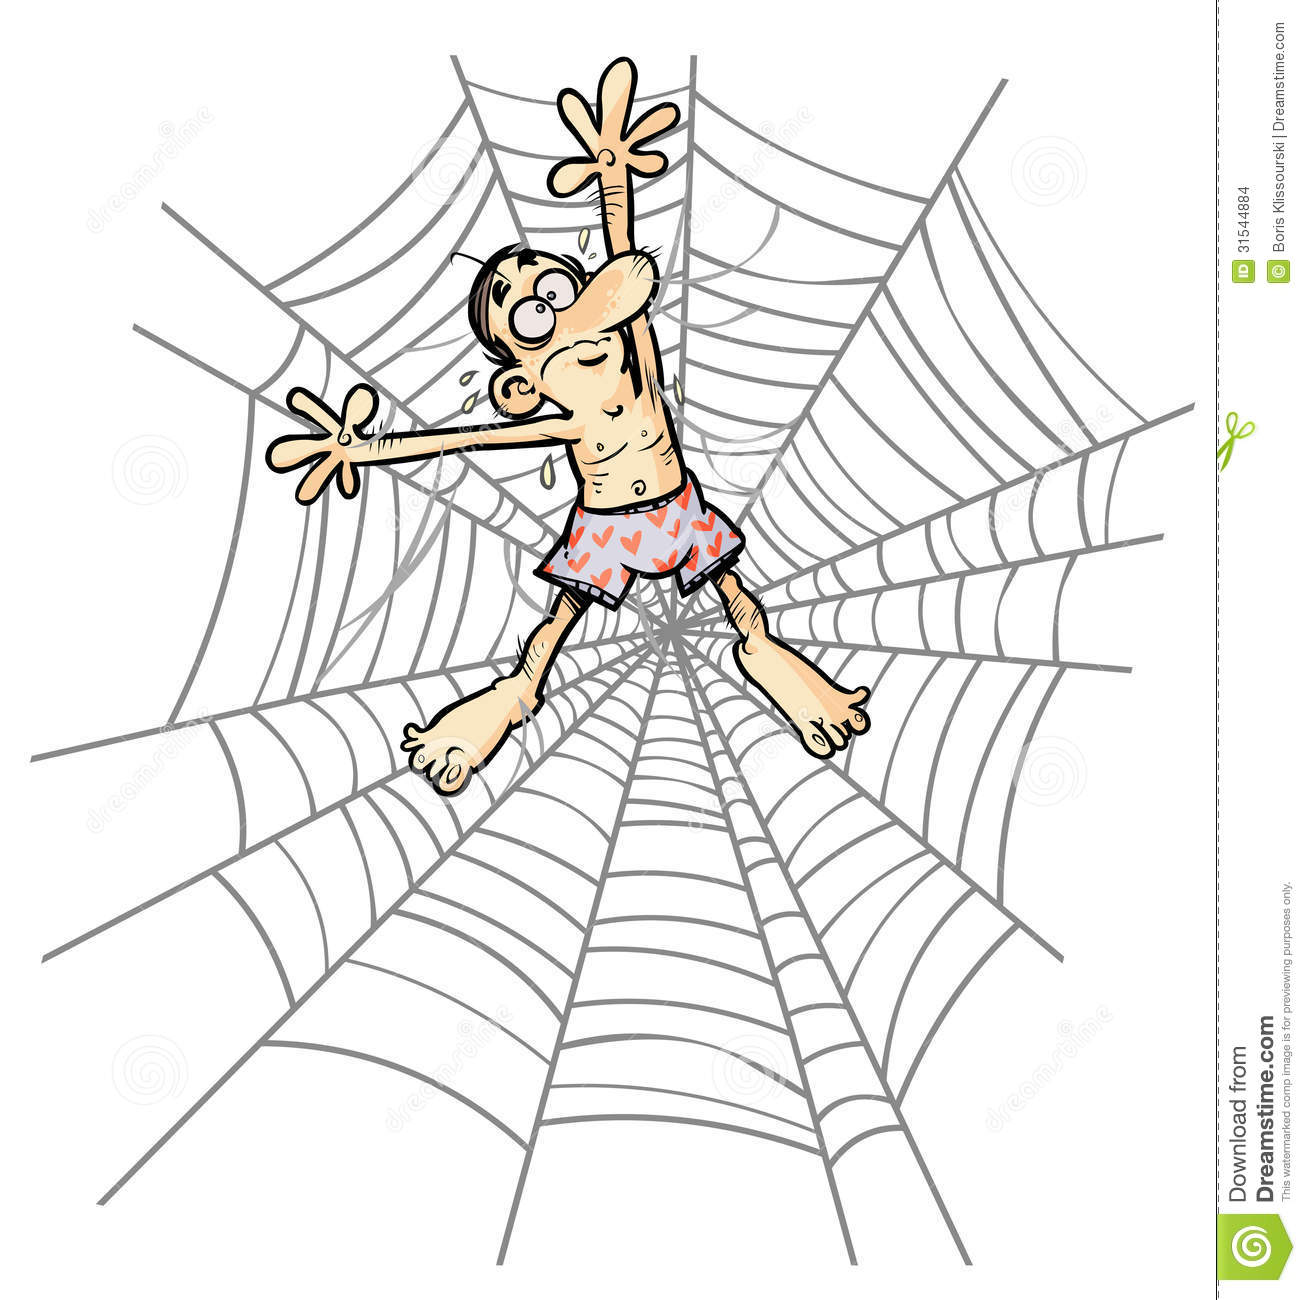 Cartoon Man In Spider Web. Stock Images - Image: 31544884